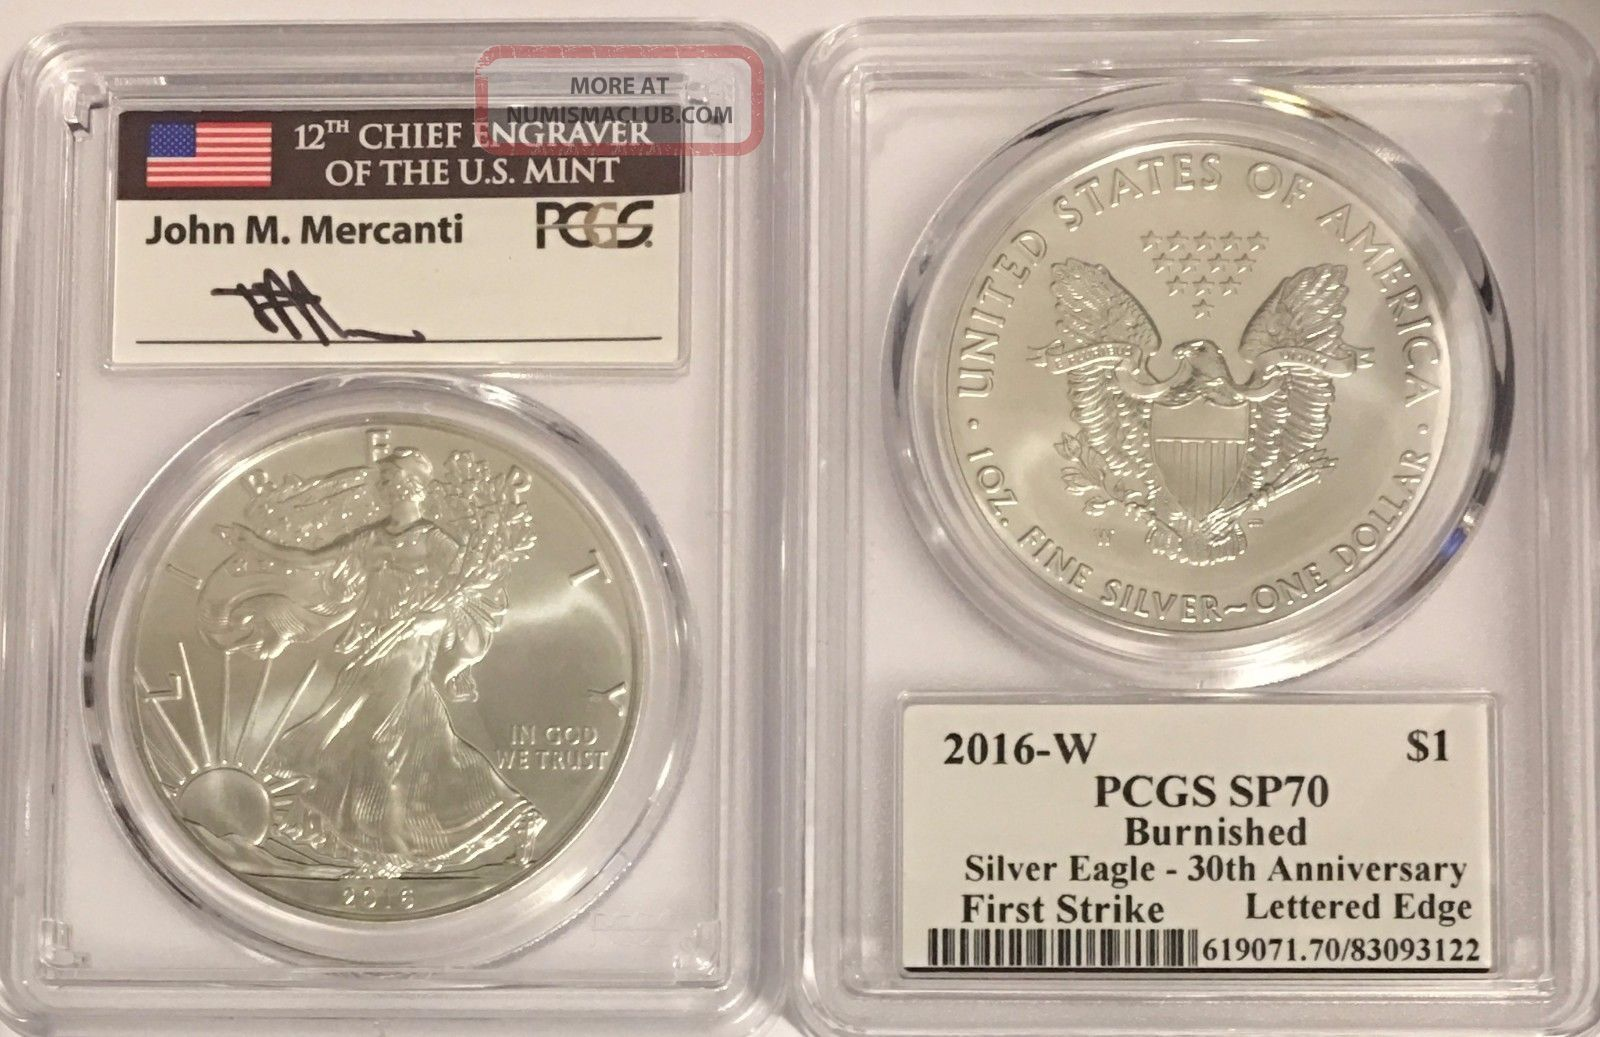 2016 W Burnished Silver Eagle Pcgs Sp70 Flag Mercanti First Strike Edge Letters Silver photo